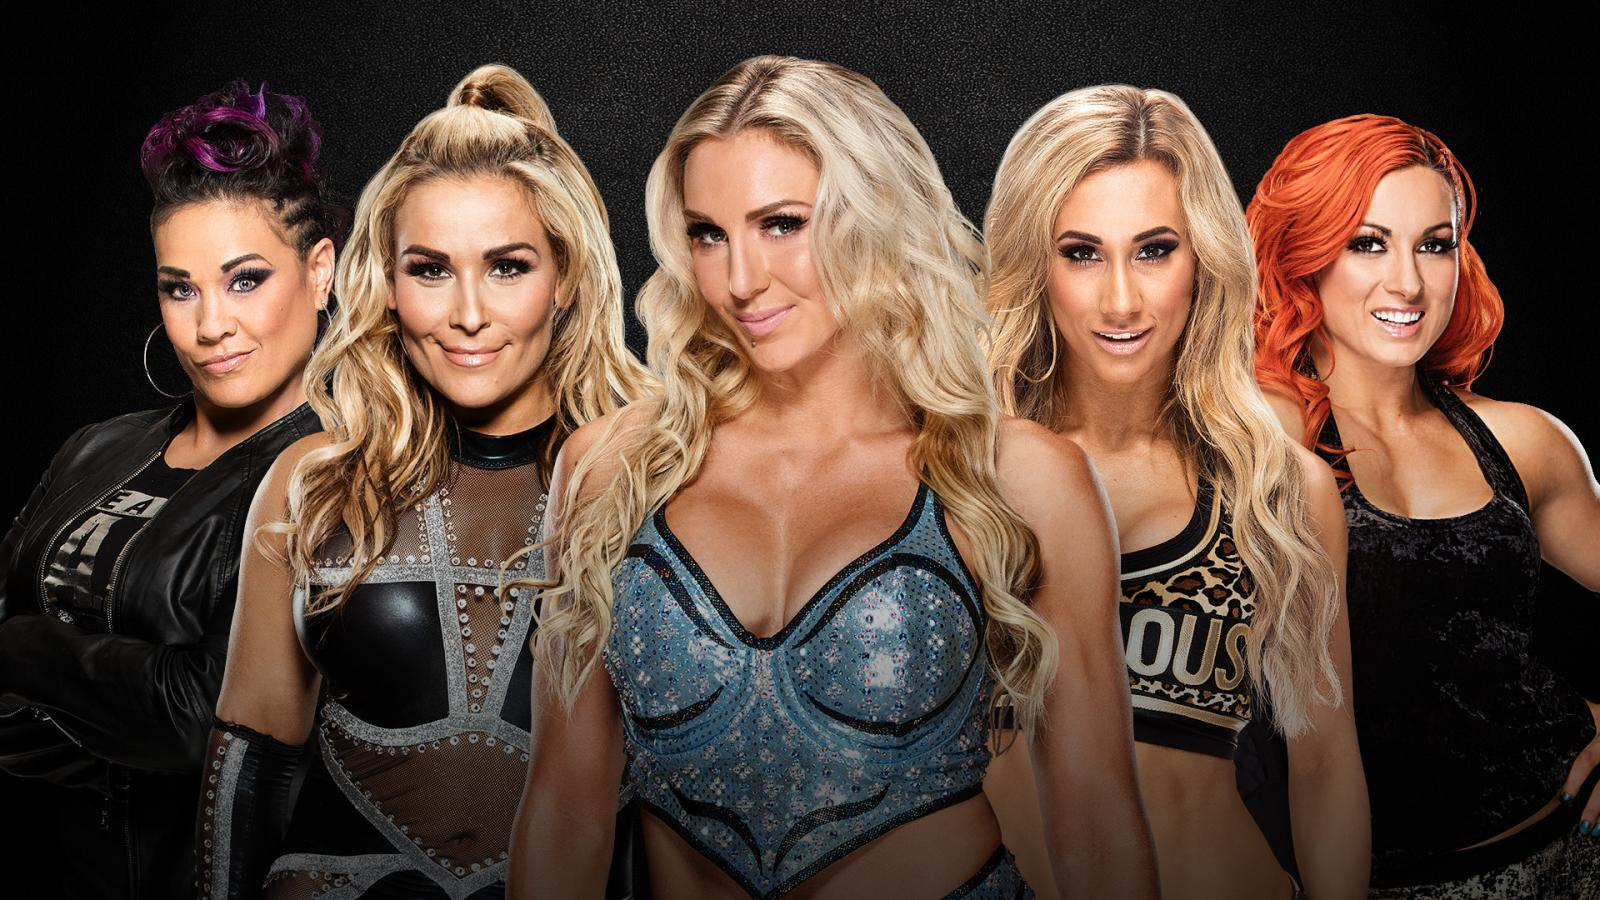 WWE Discussing All Women's Event Set For This Fall